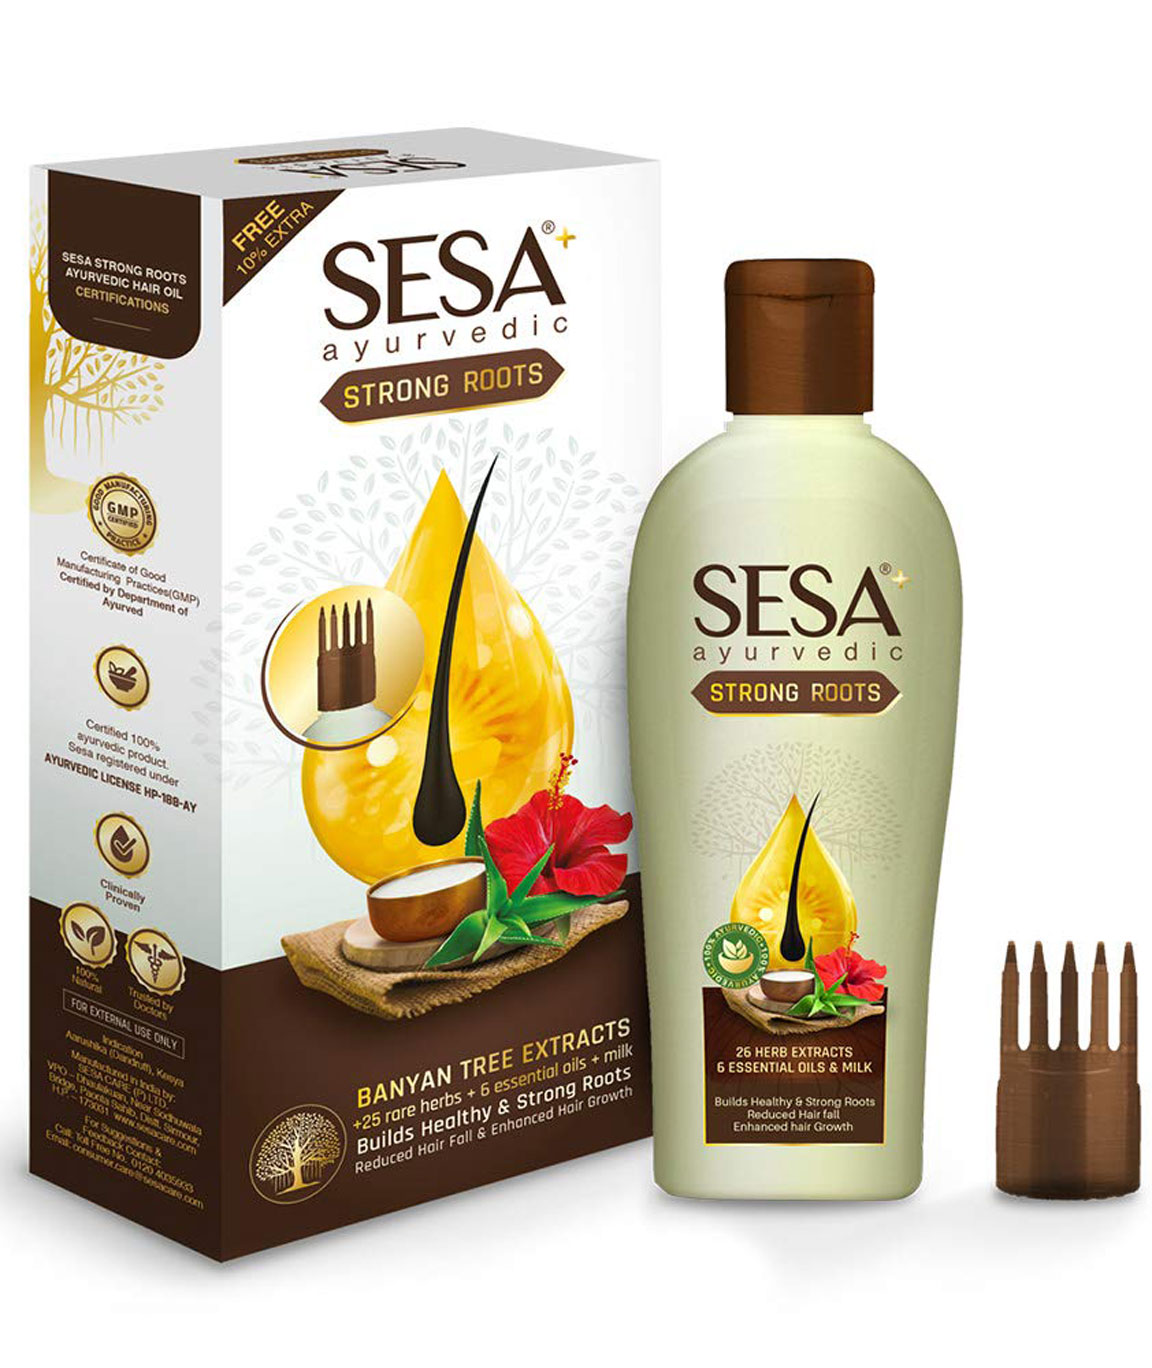 Sesa Plus Ayurvedic Strong Roots Oil, Prevents Hair Fall, Good for Hair Growth with Bhringraj and pure Banyan Tree Extracts 100ml